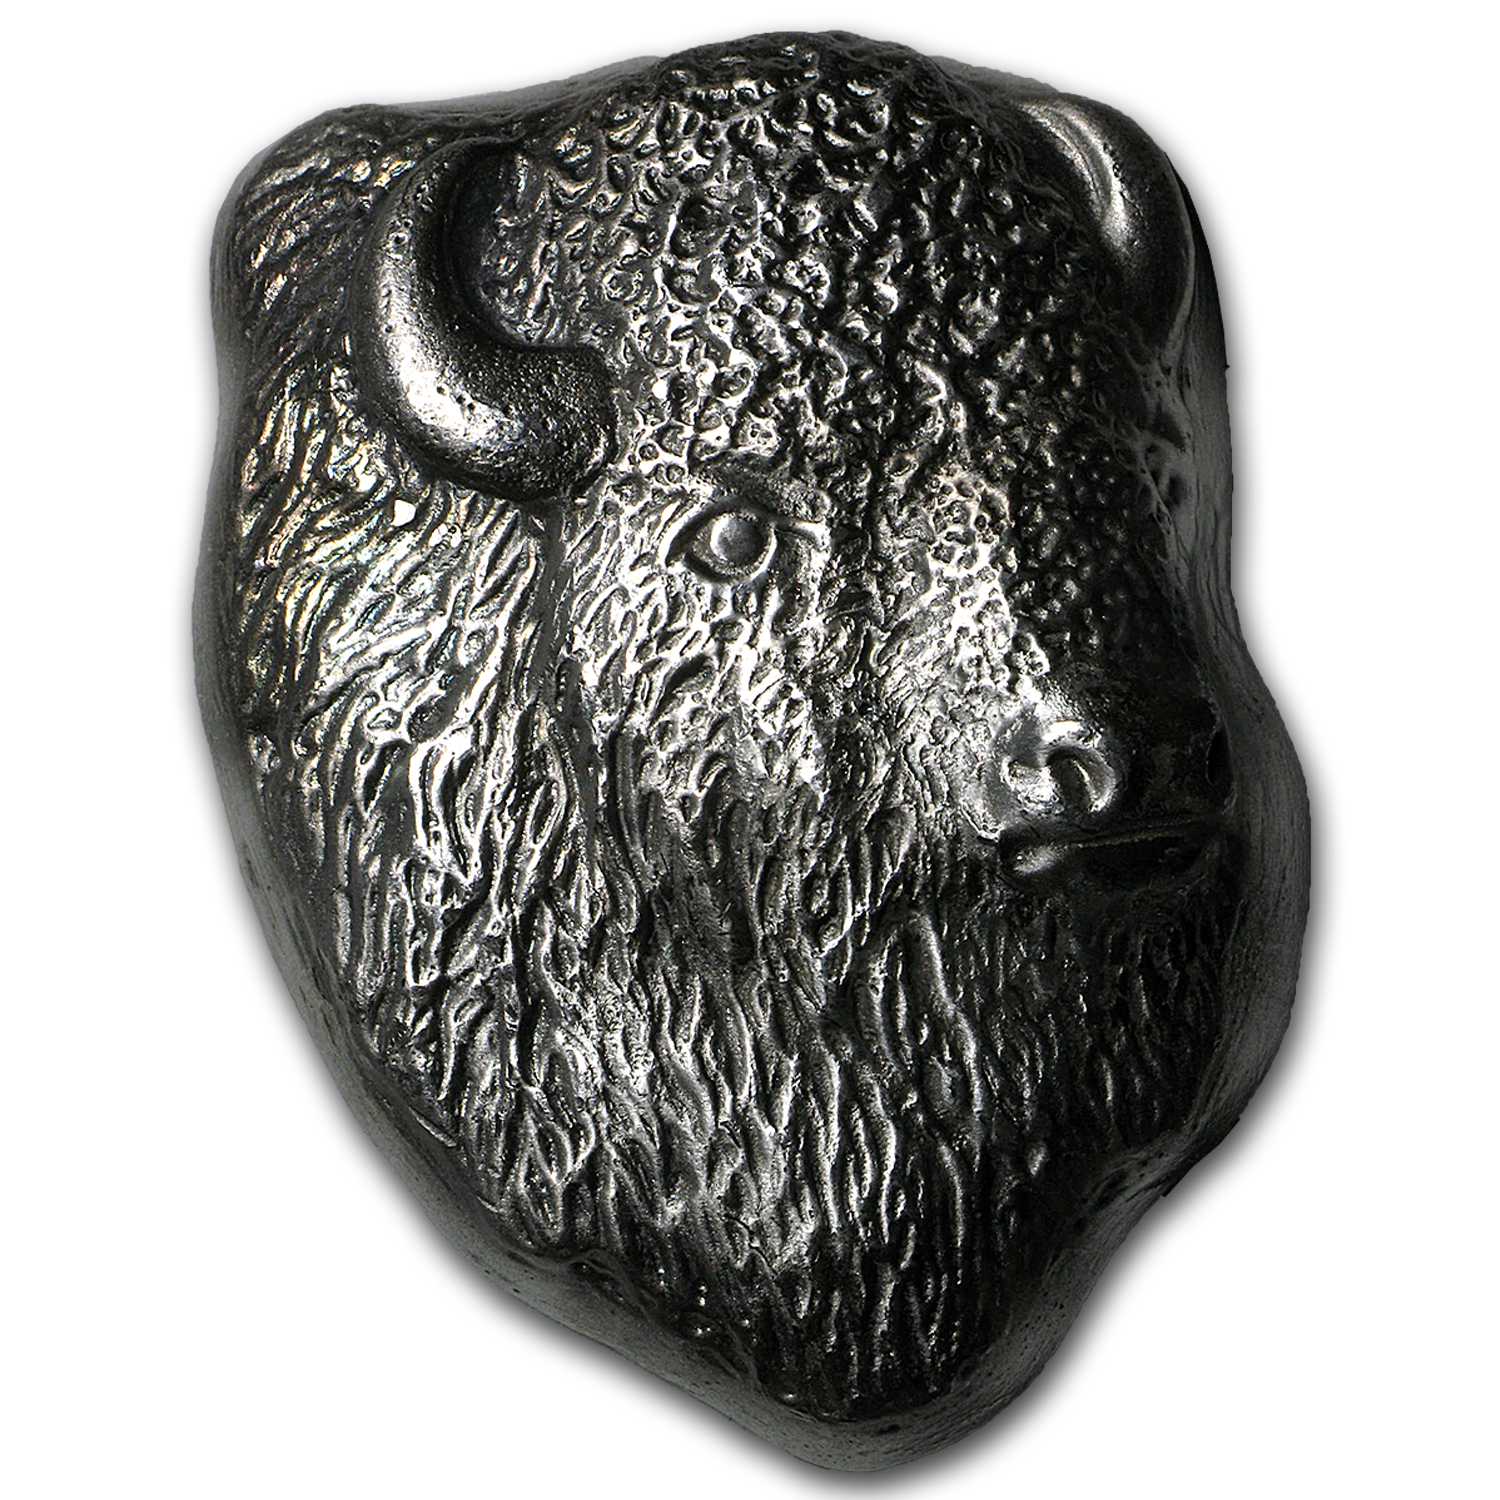 10 oz Silver Bar - Bison Bullion (Bison Head)